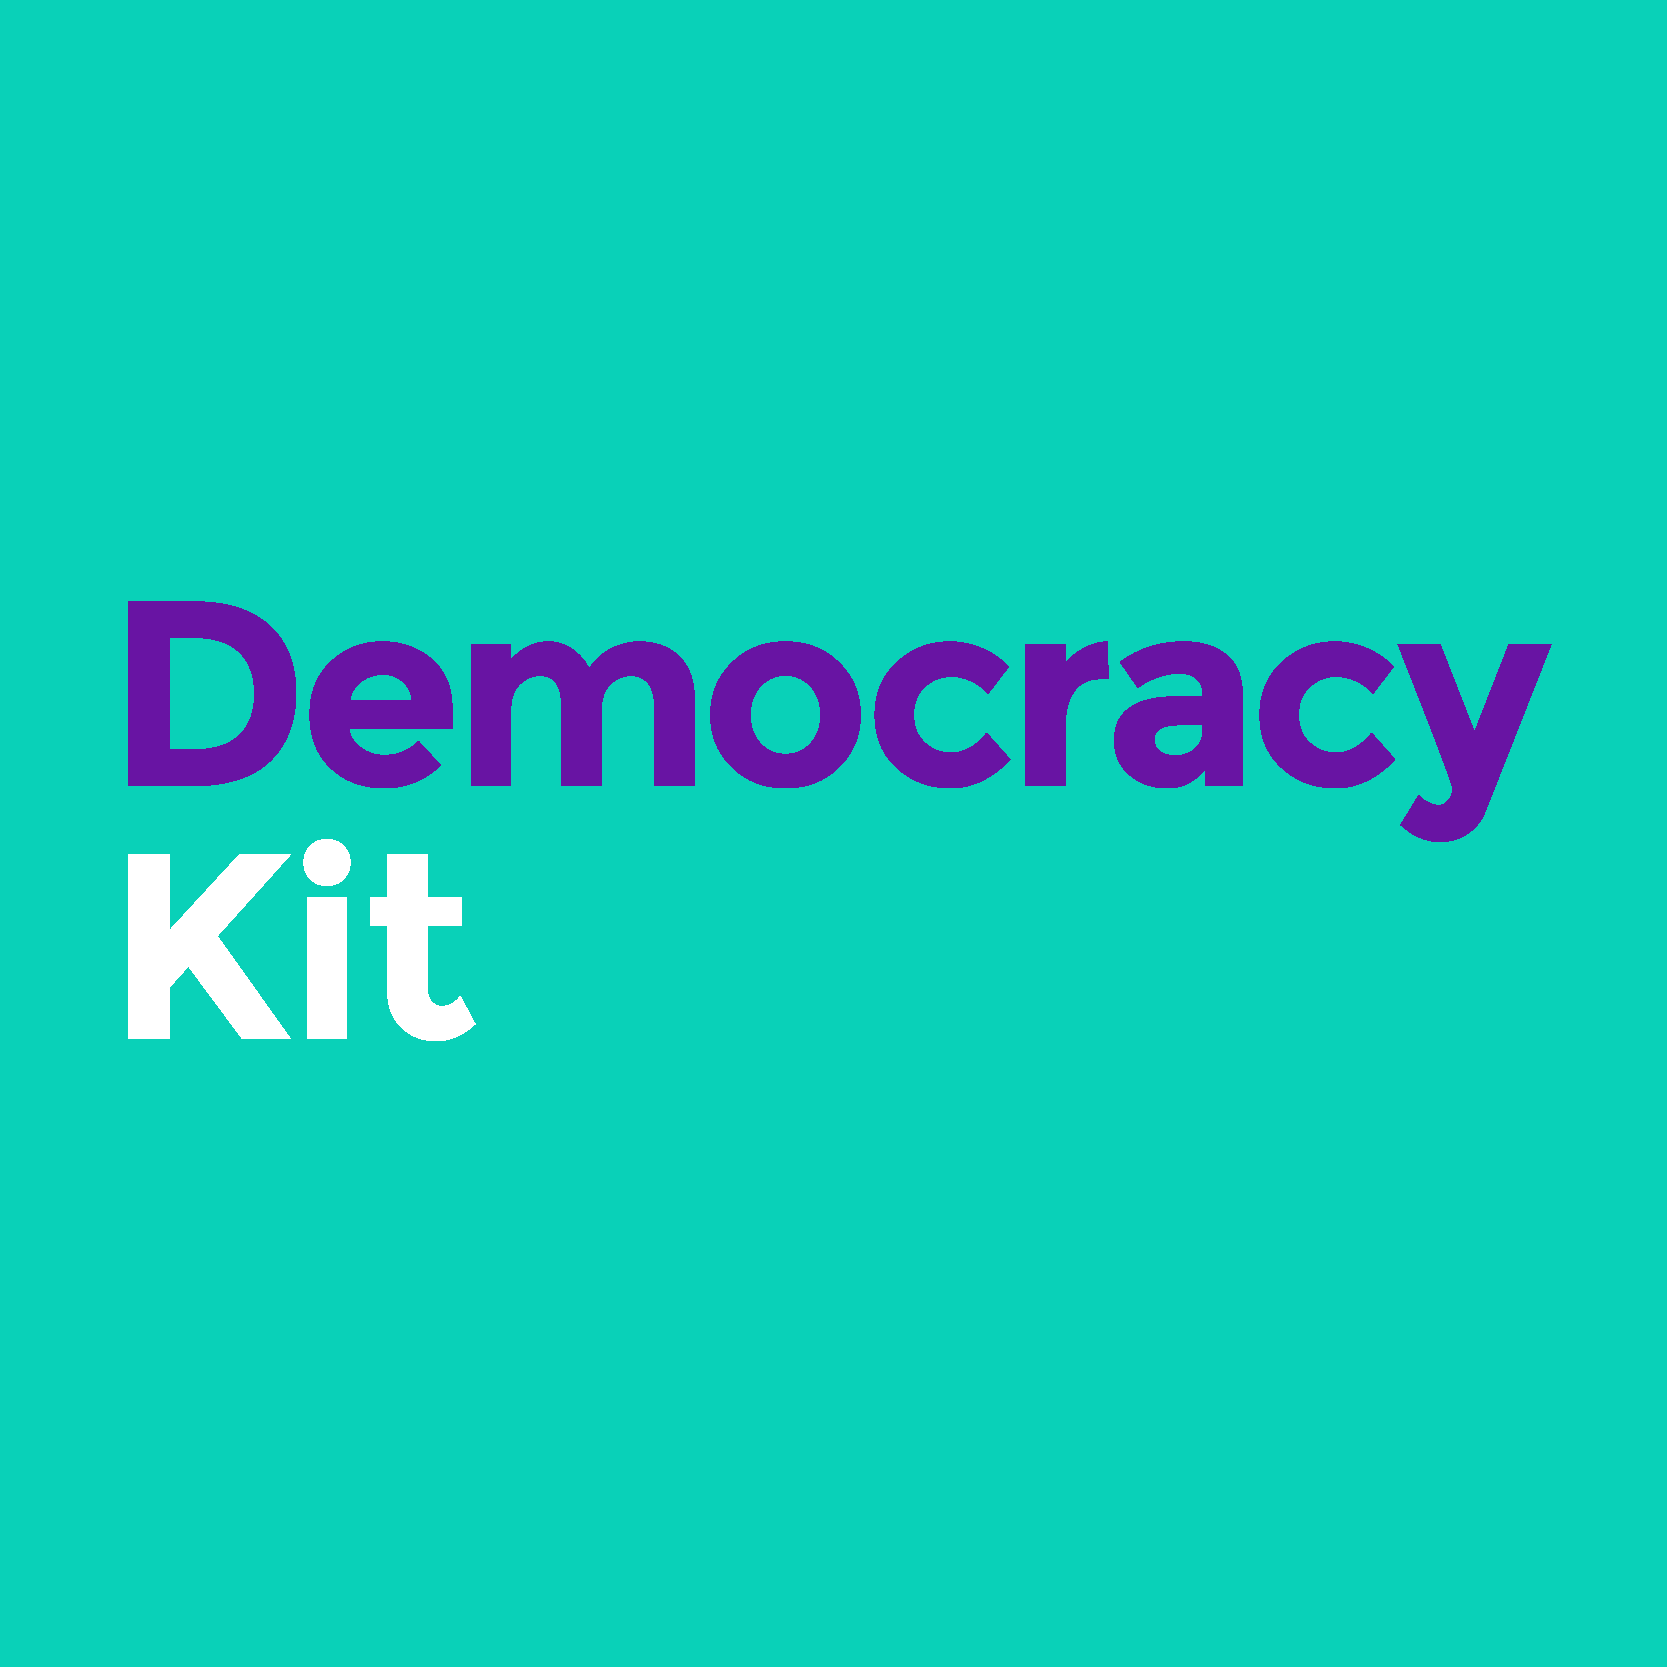 DemocracyKit | Open Democracy Project